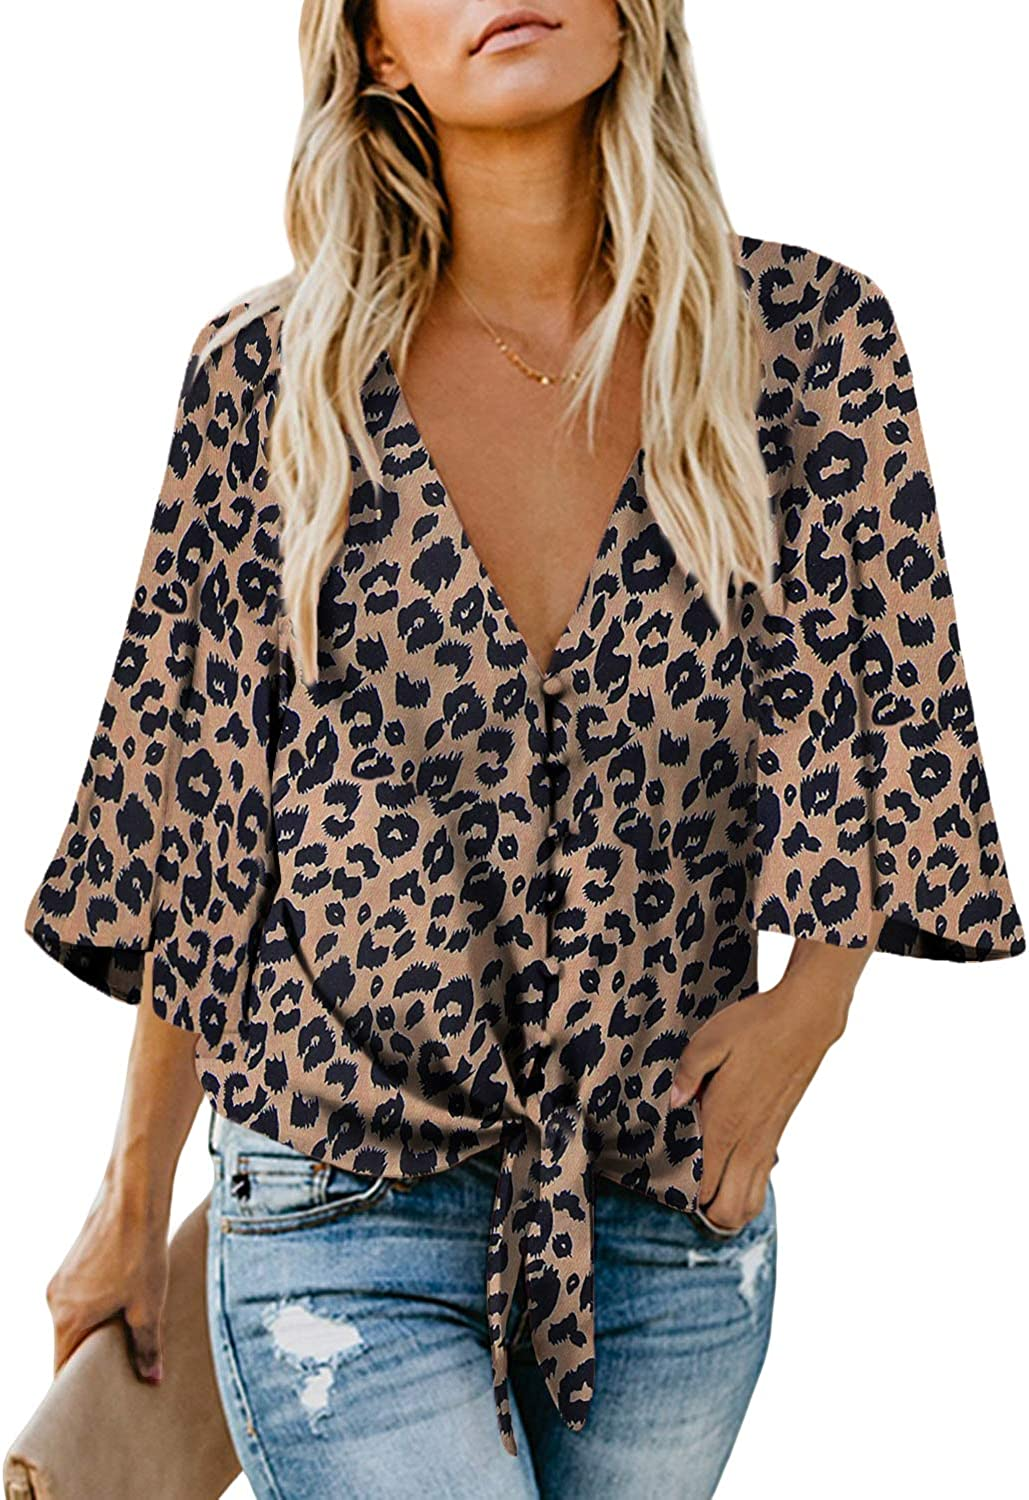 Biucly Women's V Neck Tops 3/4 Sleeve & Short Sleeve Chiffon Casual Tie Knot Blouses Button Down Shirts